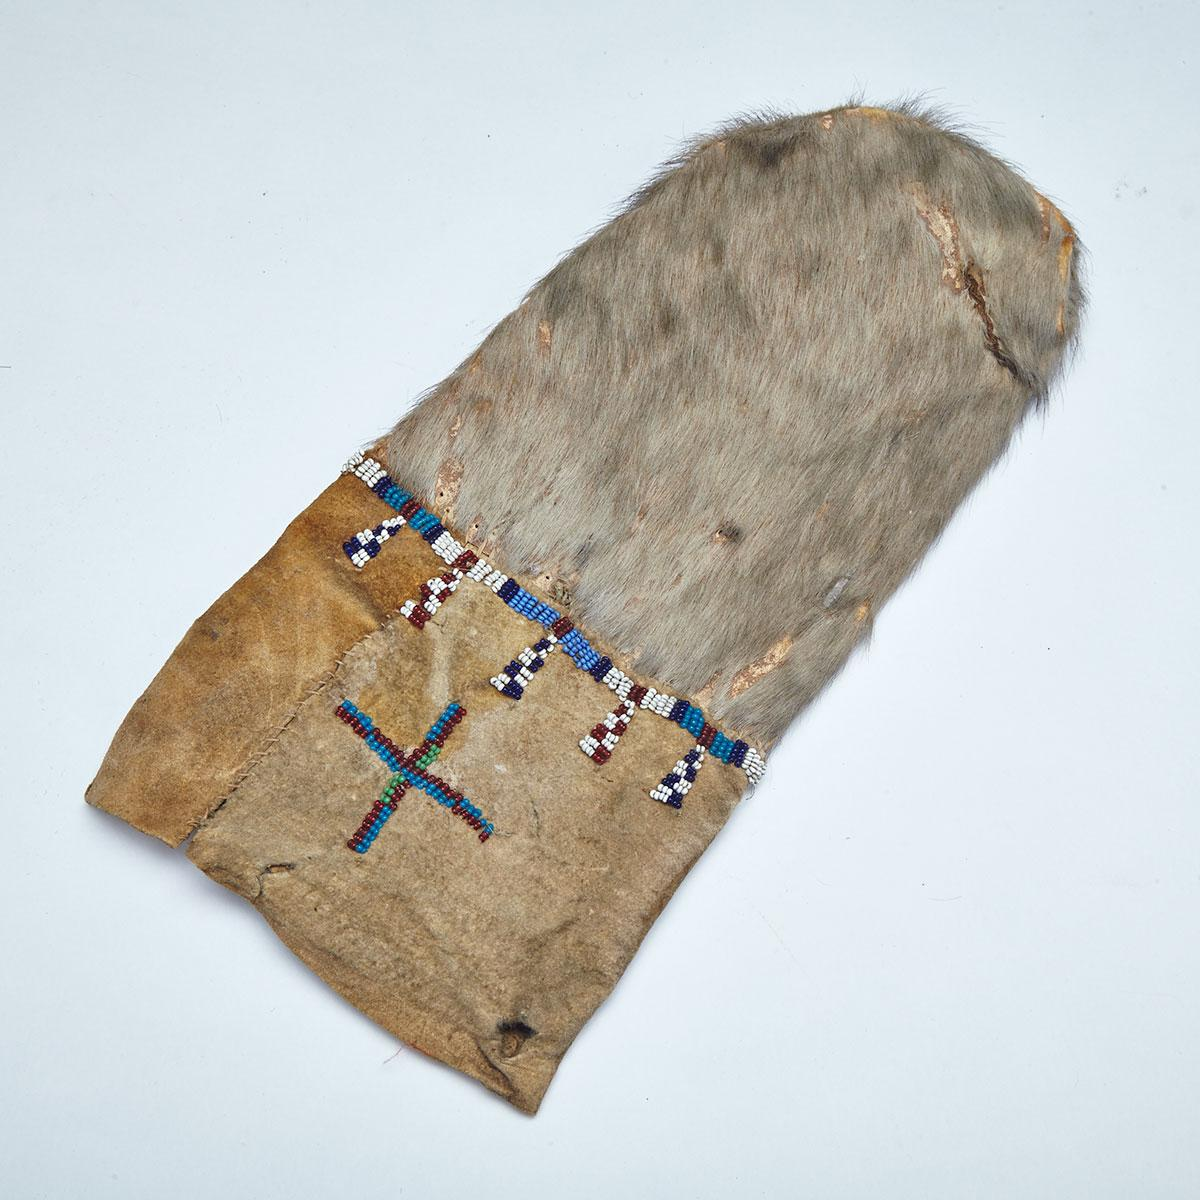 Inuit Beaded Sealskin Pouch, 19th century